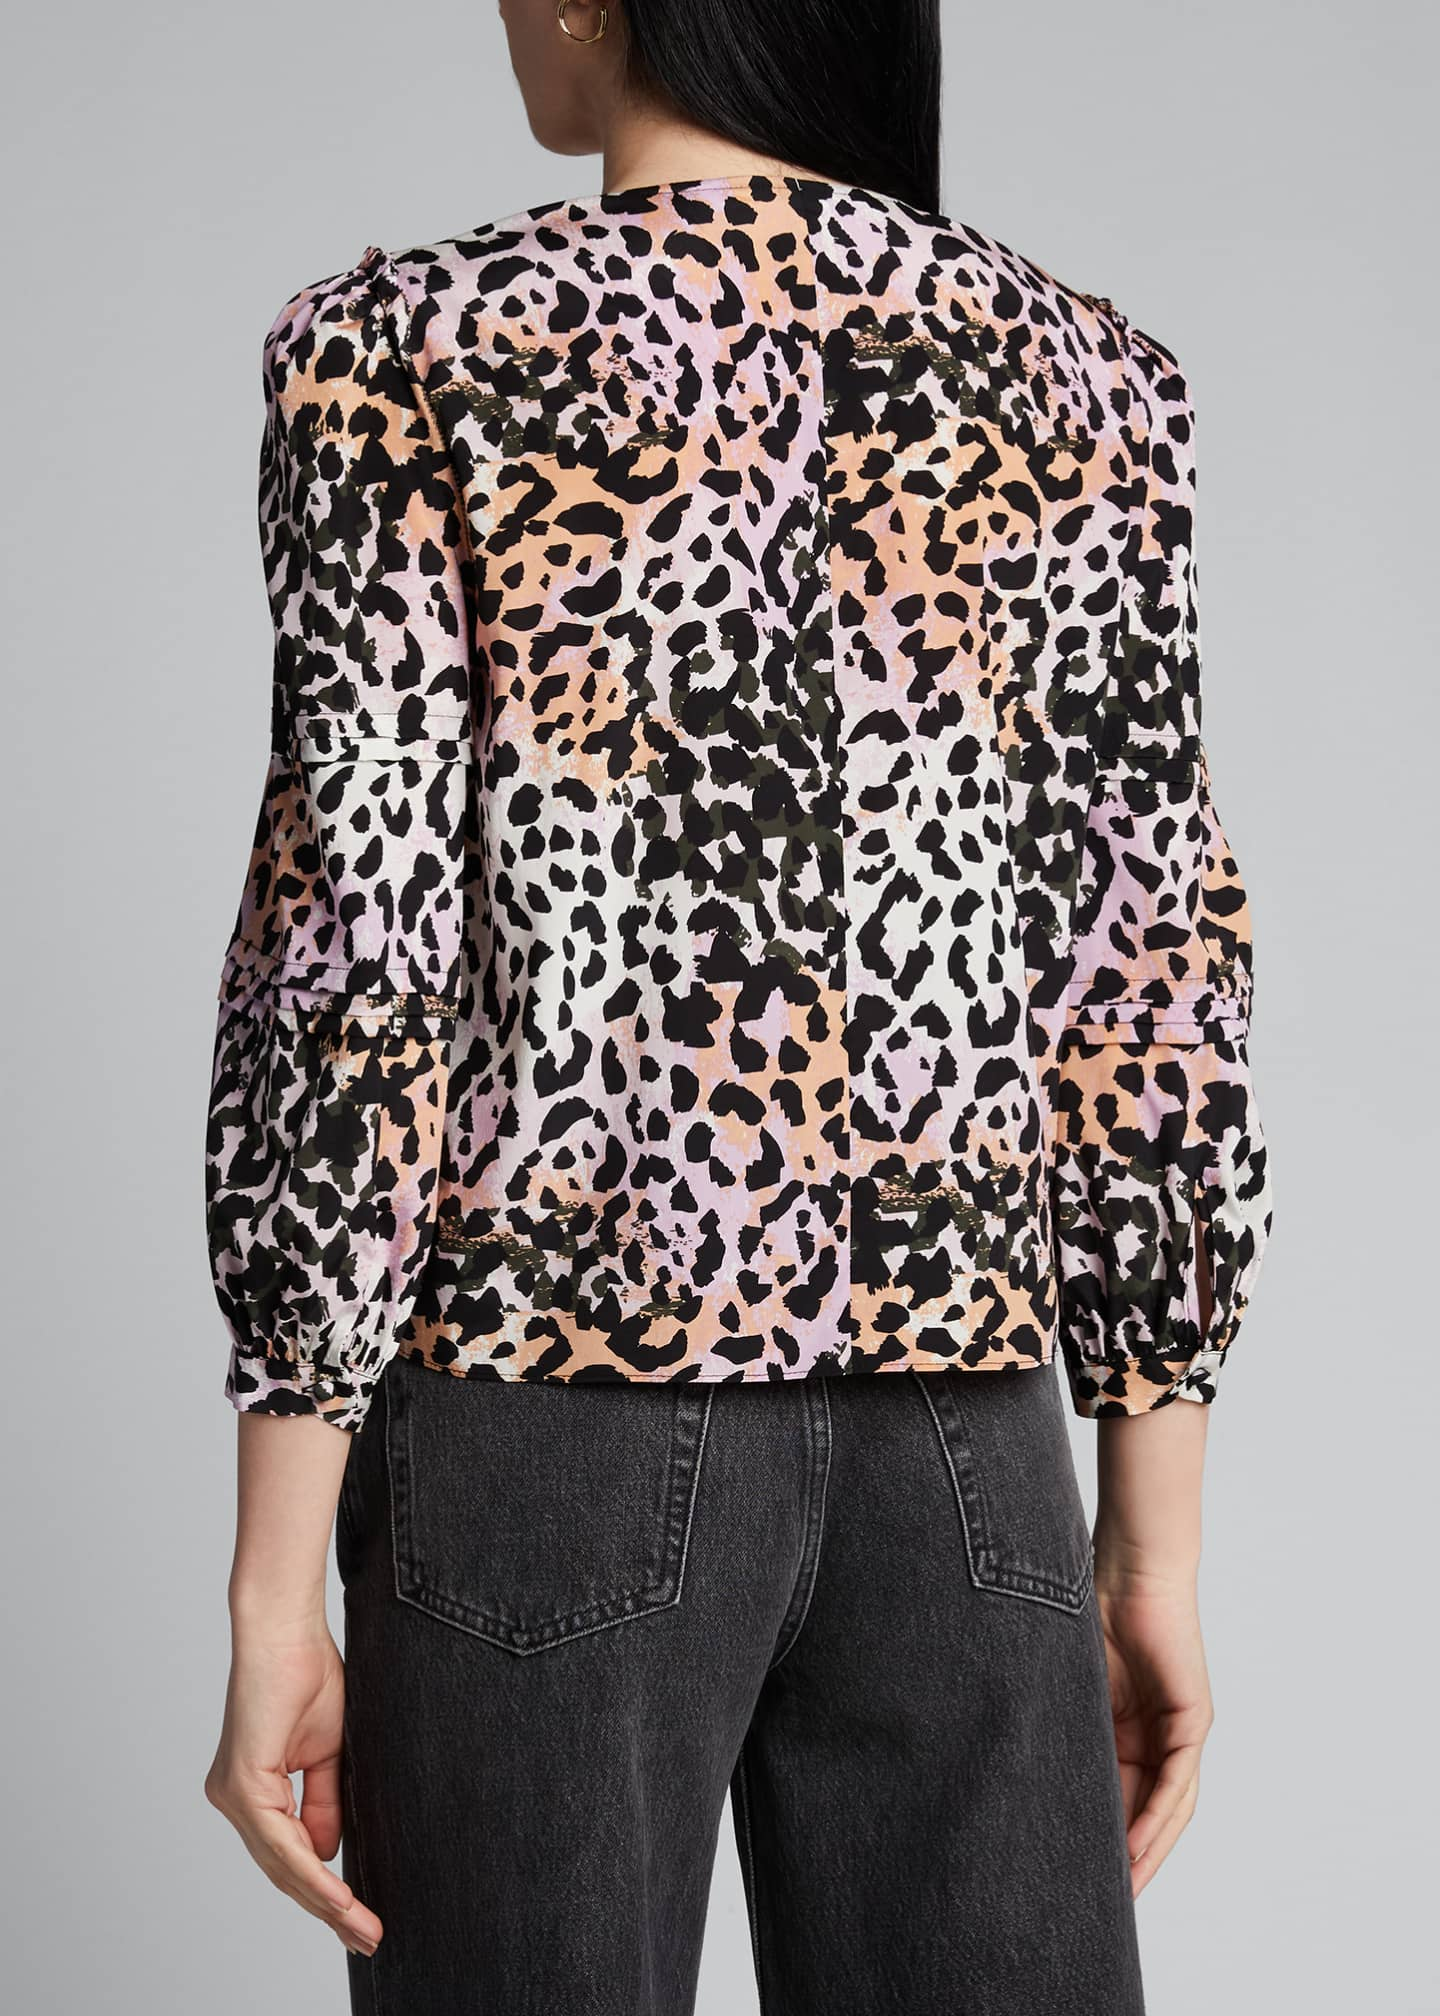 Image 2 of 5: Ramona 3/4-Sleeve Top